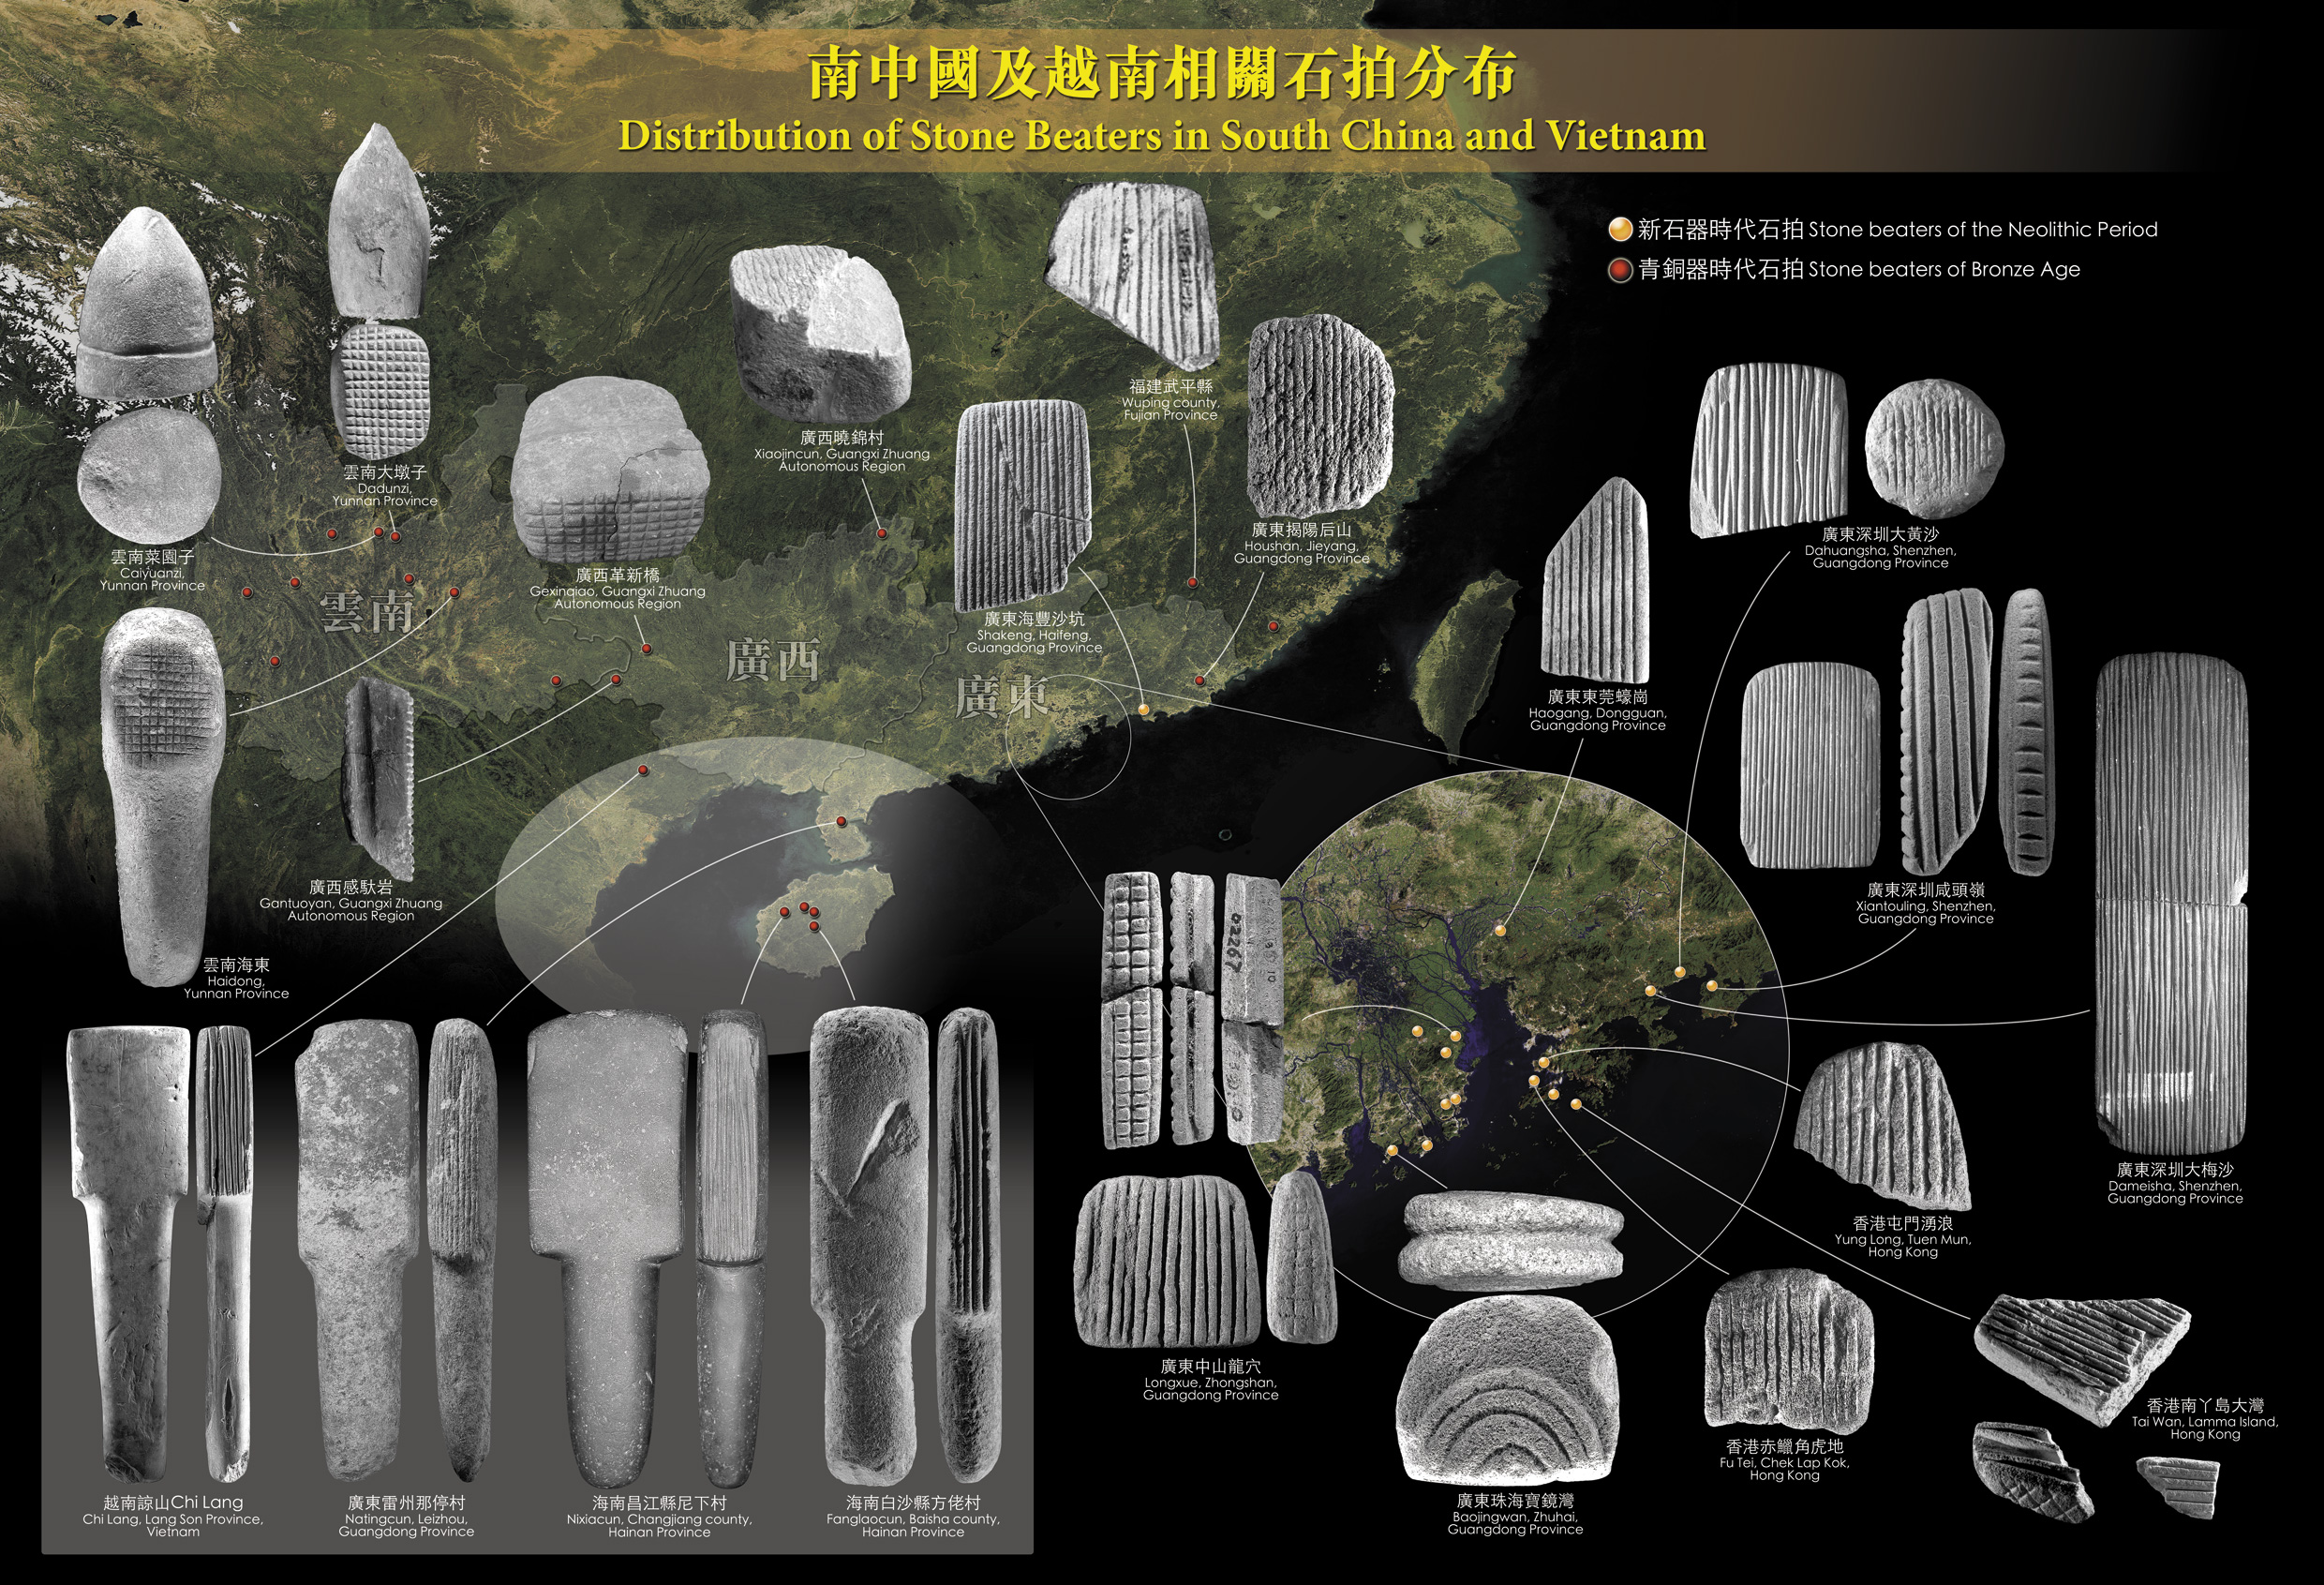 Distribution of stone beaters in South China and Vietnam